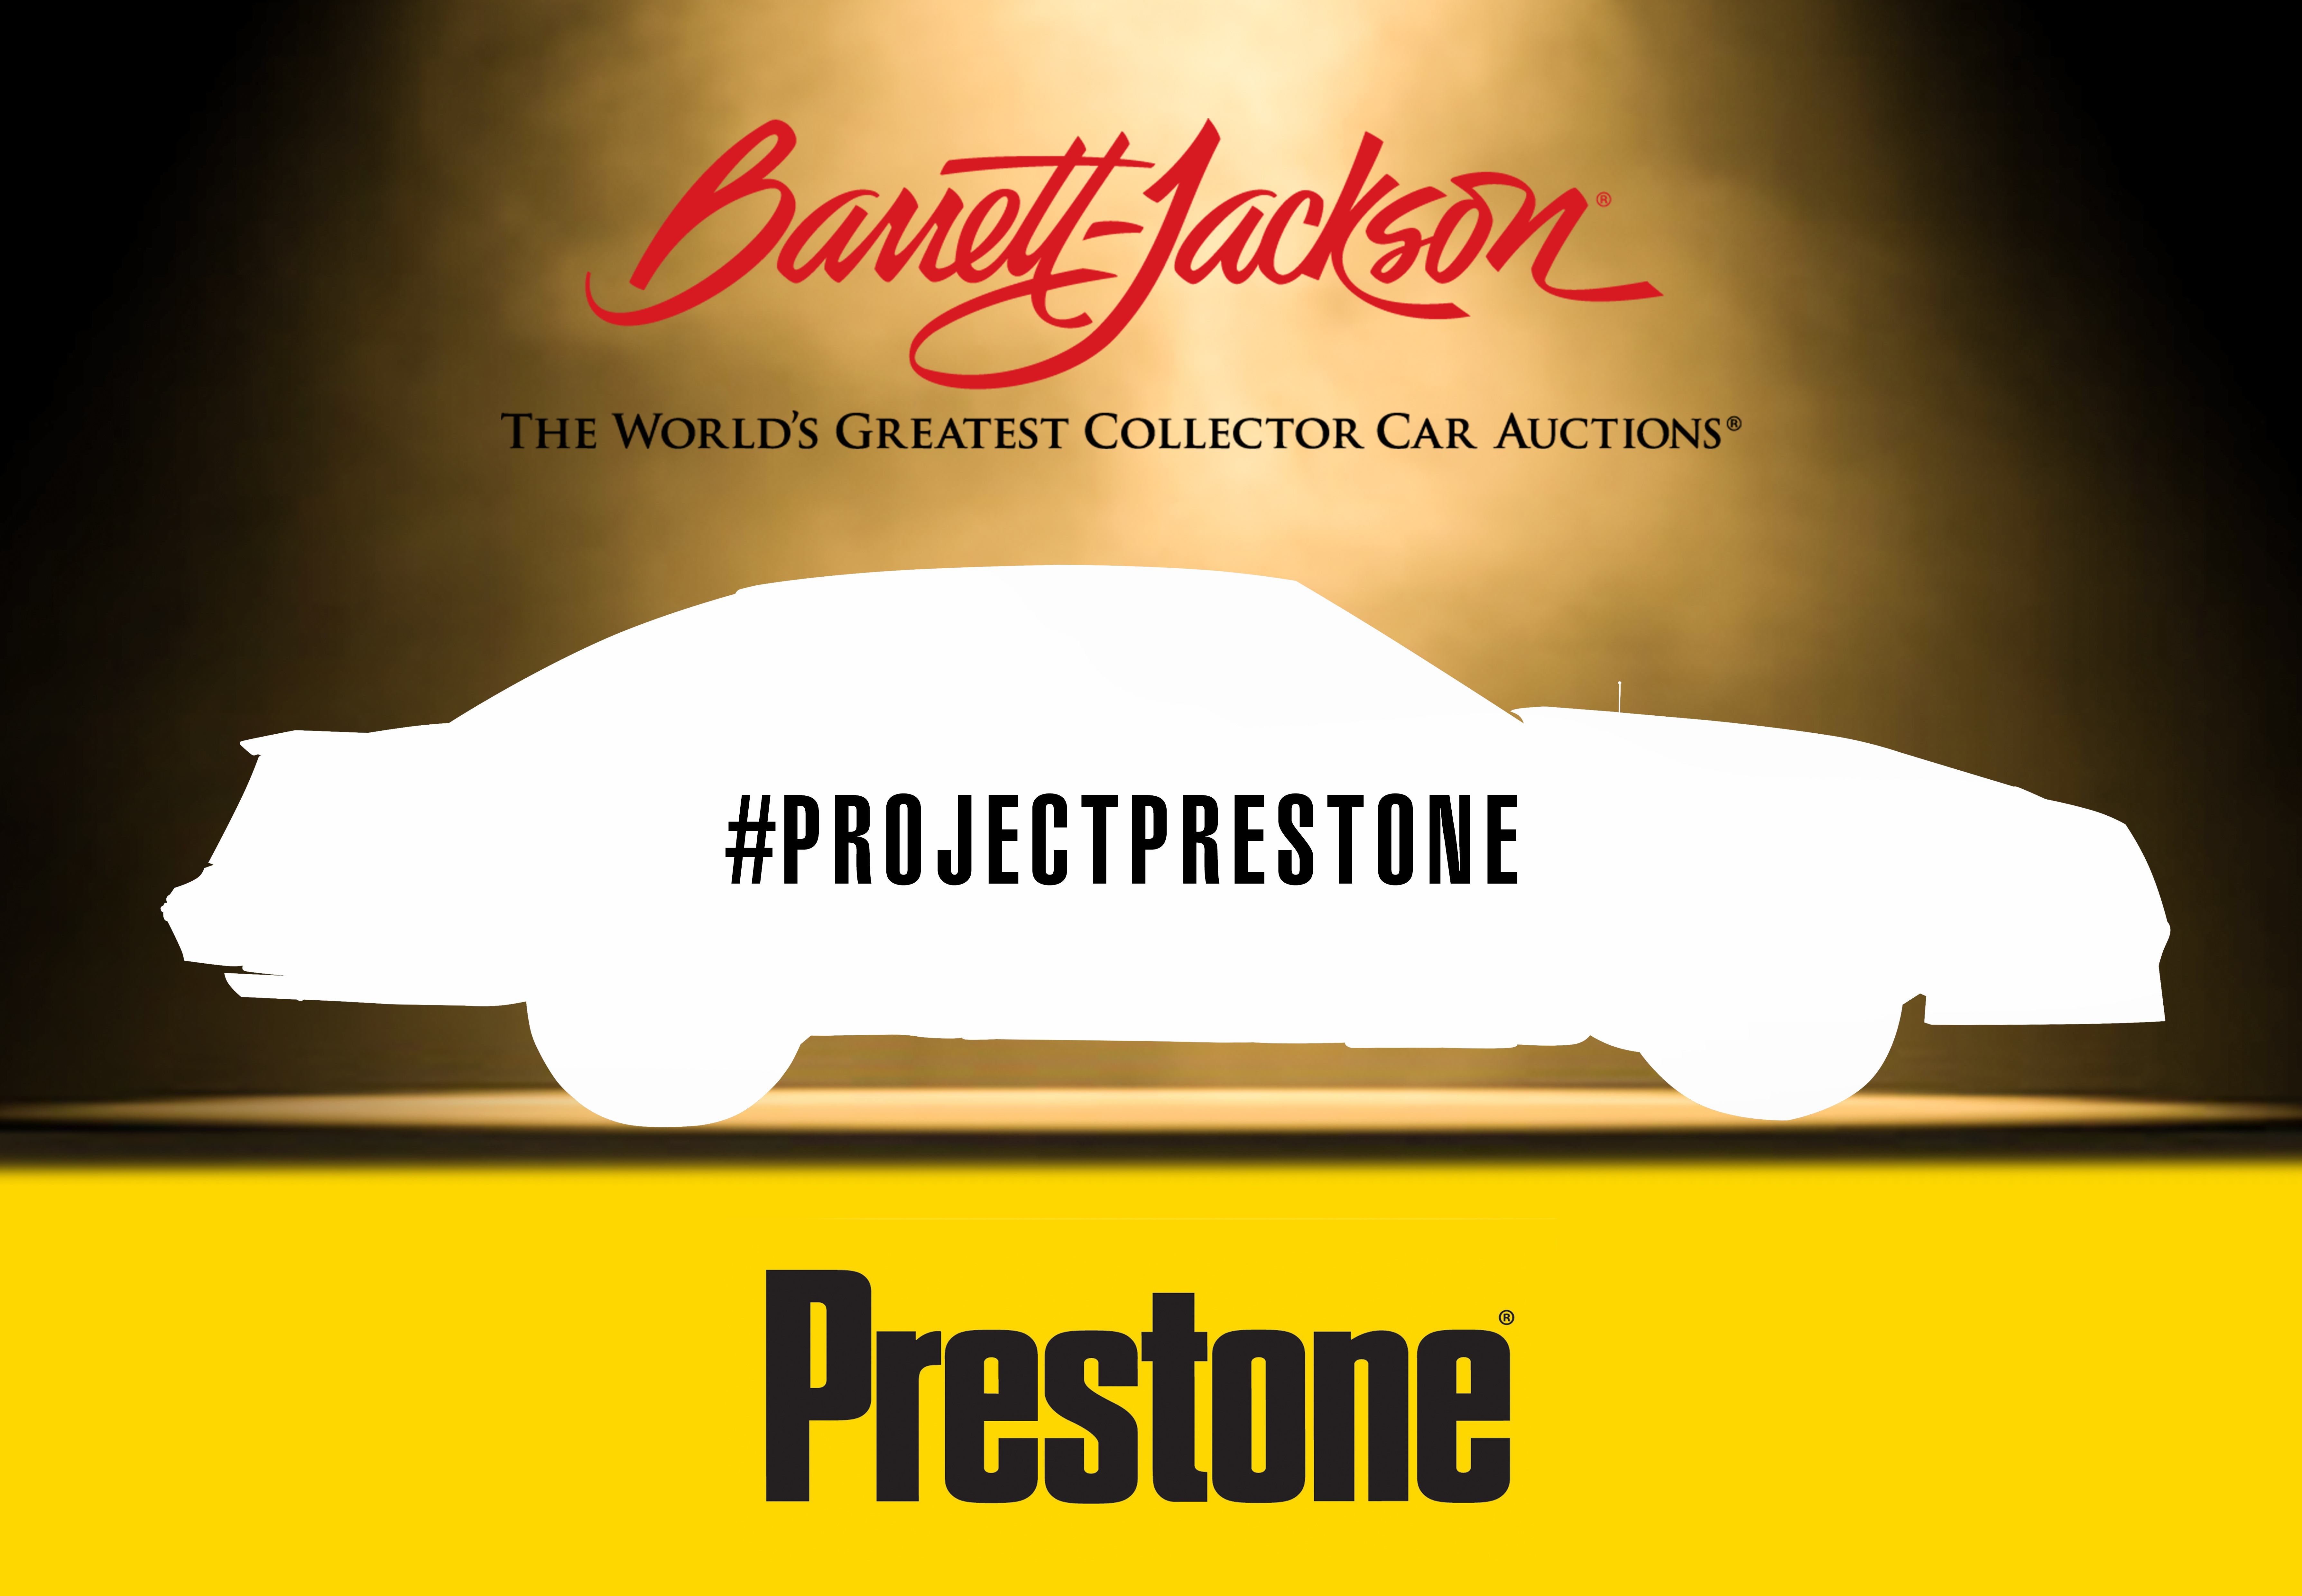 Barrett-Jackson and Prestone will unveil a vehicle and make a special announcement at Barrett-Jackson's 2017 Northeast Auction, June 22, 2017 at 1:30 PM. (Graphic: Business Wire)